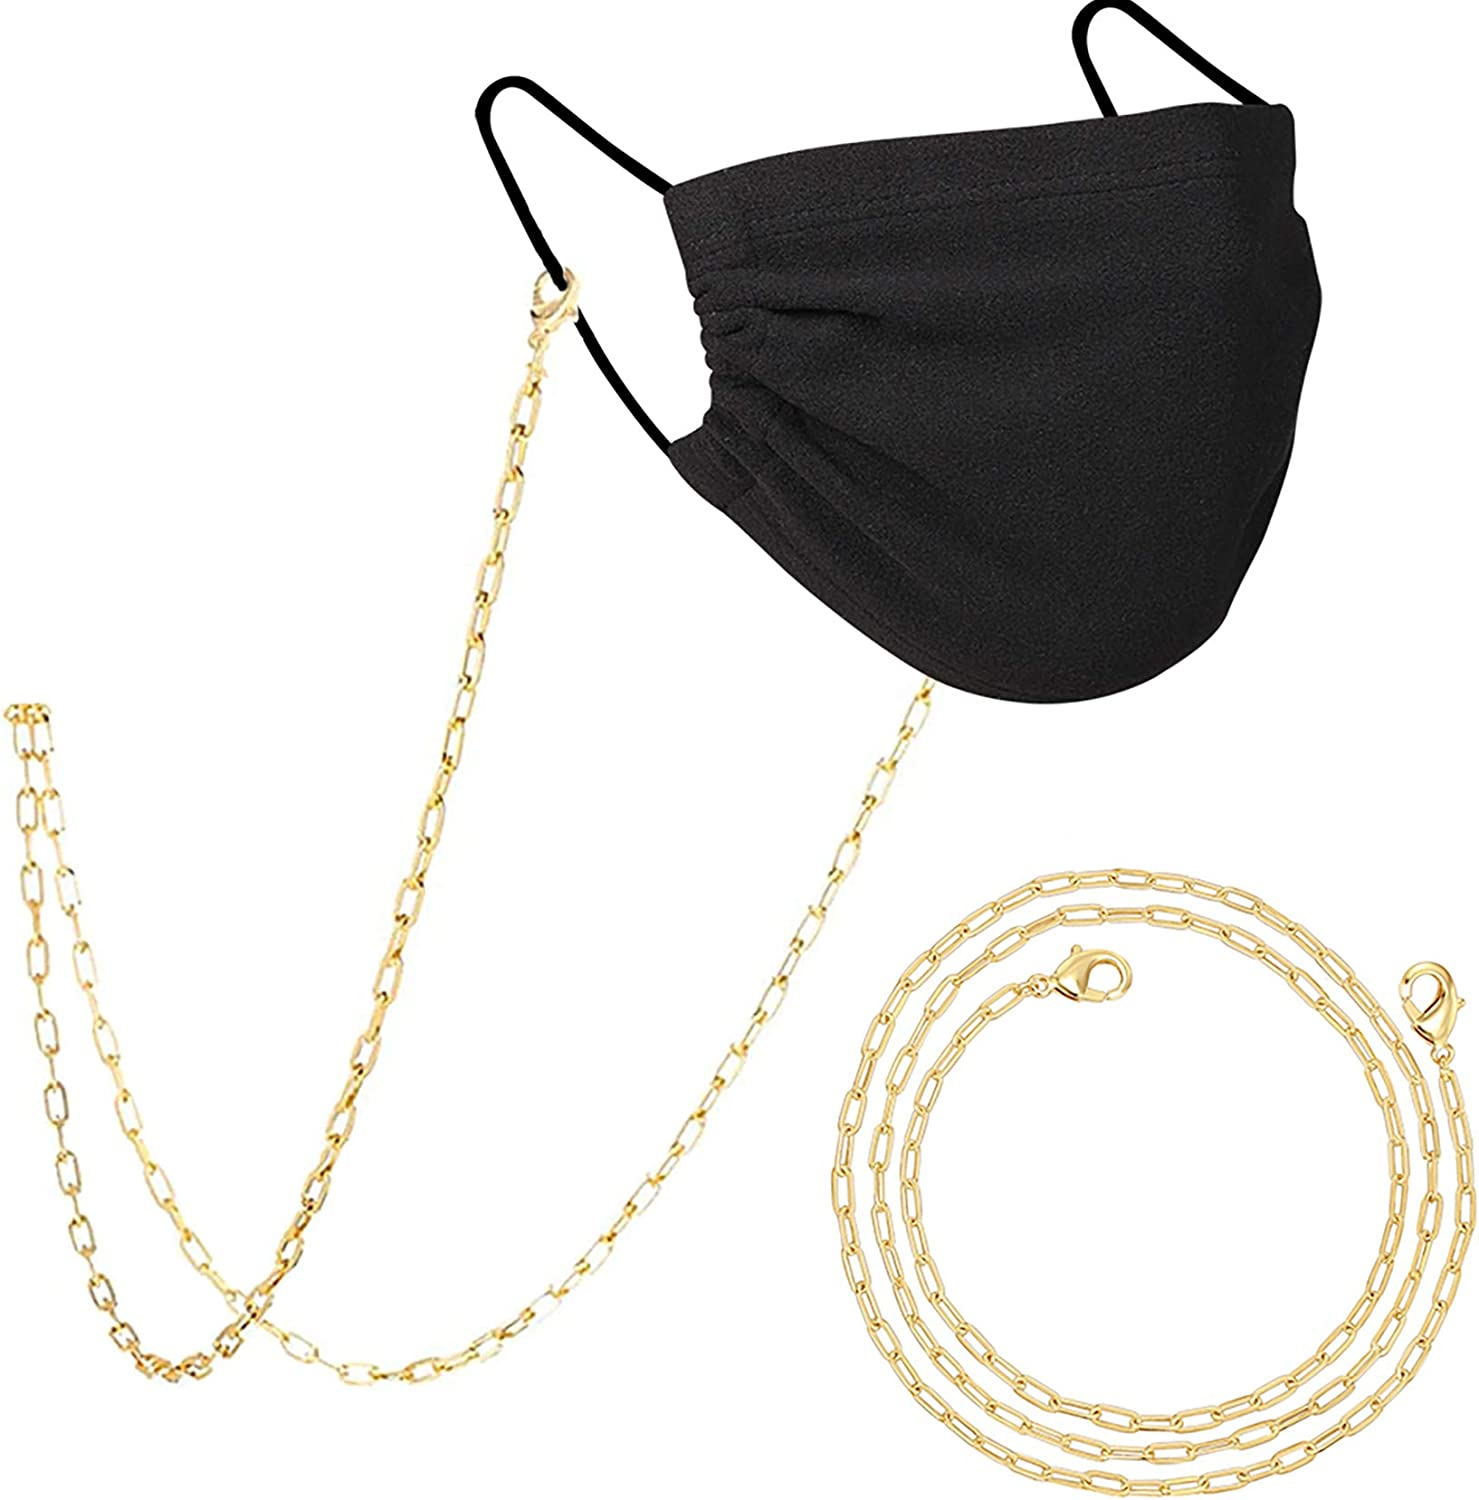 PAVOI 14K Gold Plated Mask Necklace | Strap Lanyard | Face Mask Chains for Women